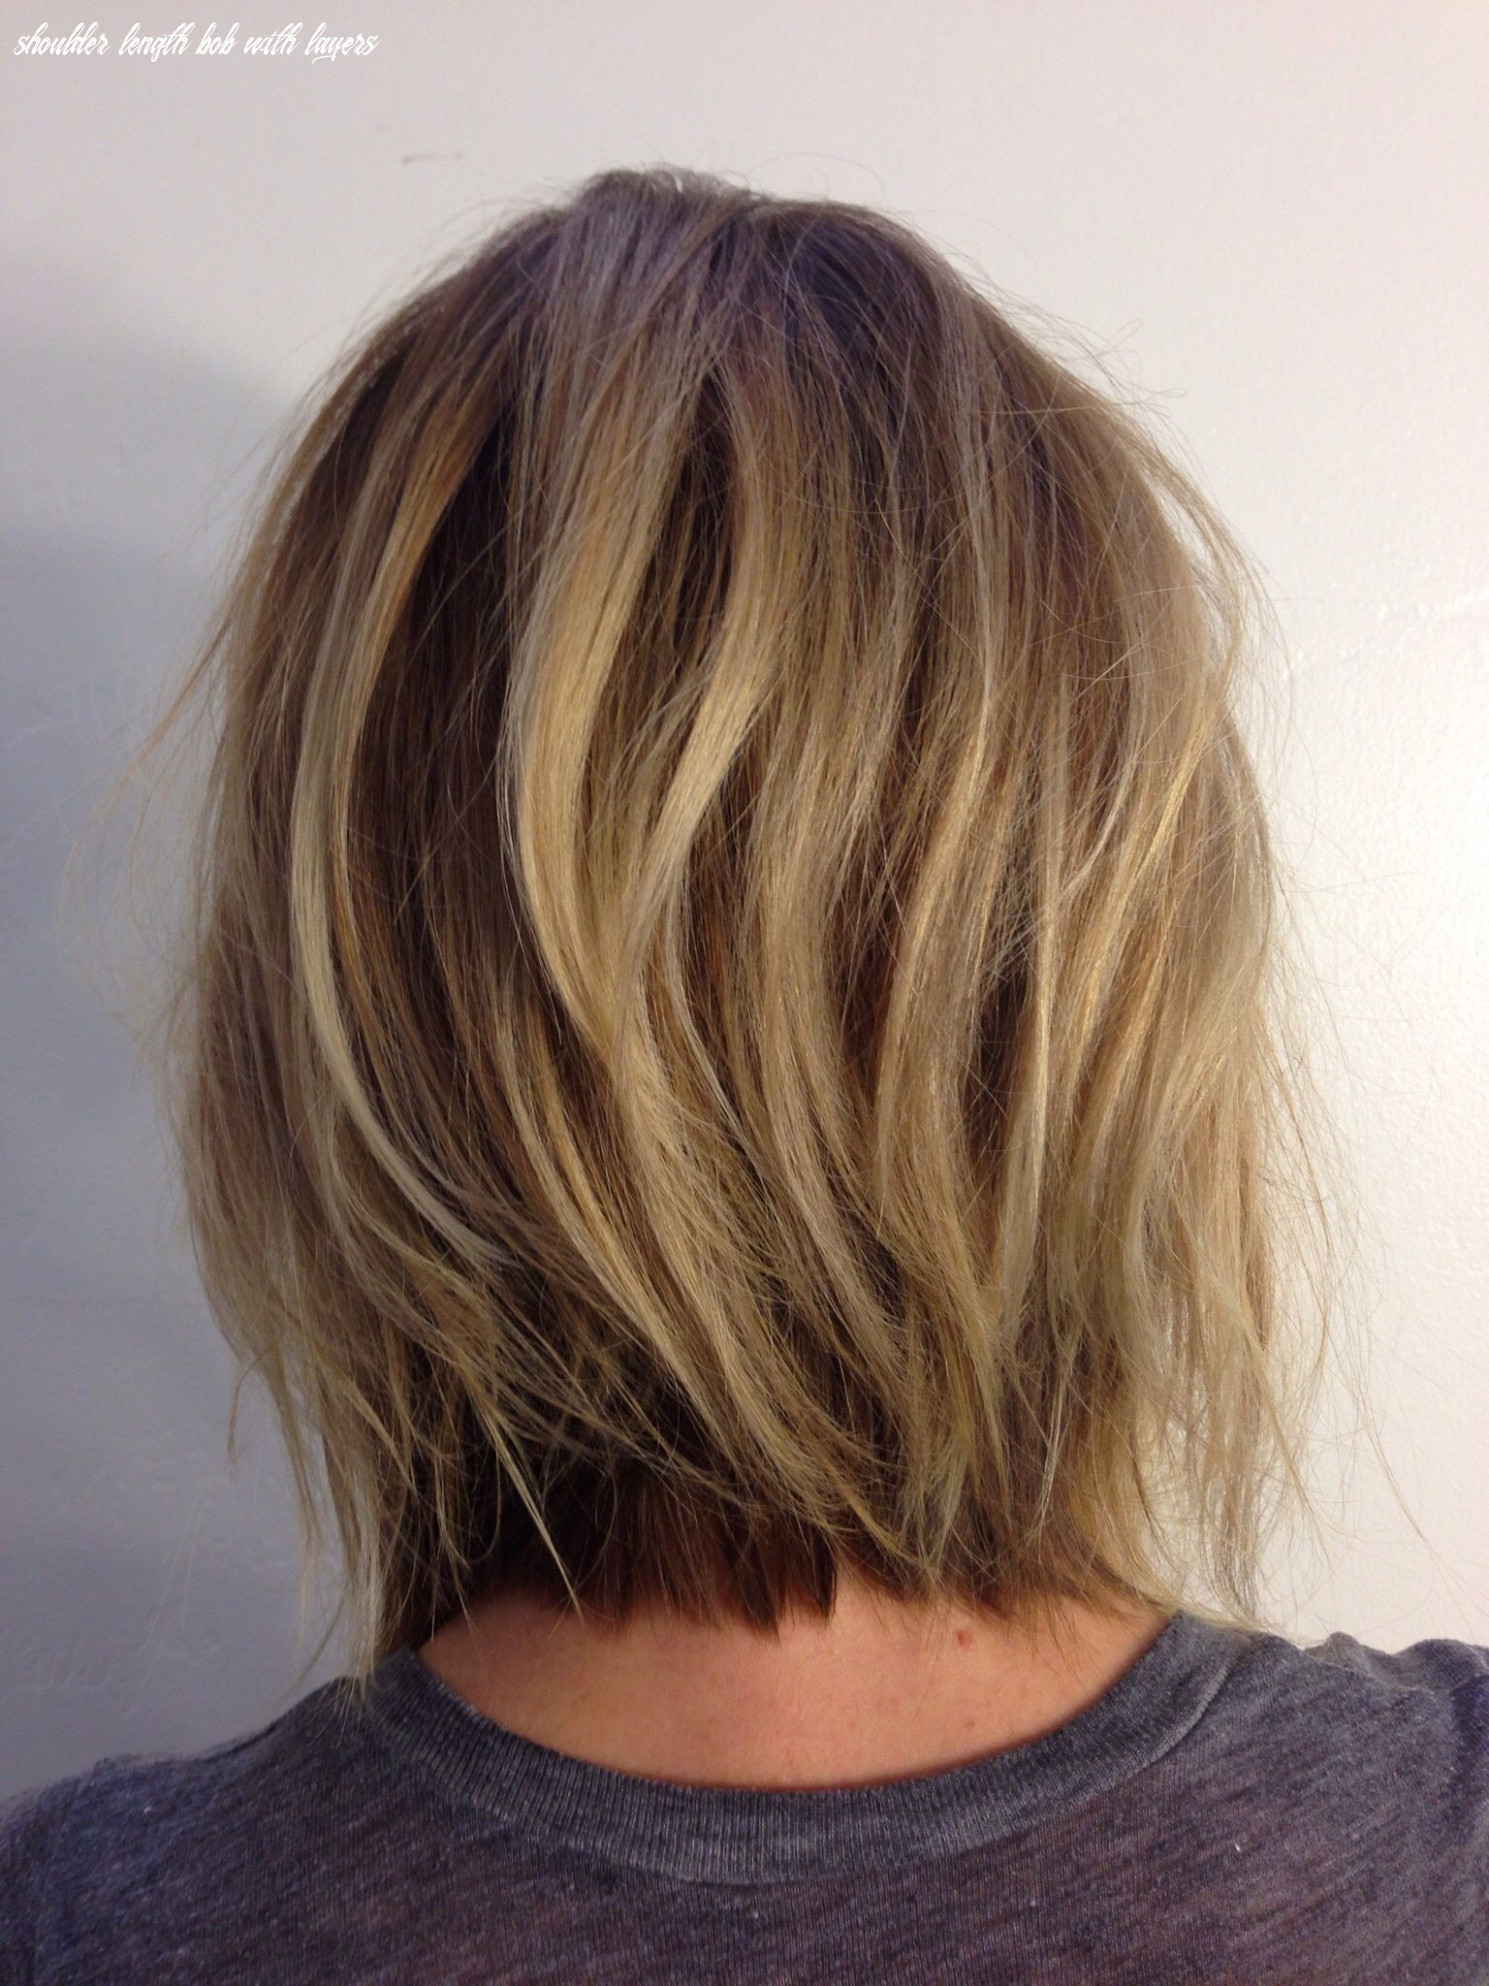 Pin on hair cut shoulder length bob with layers